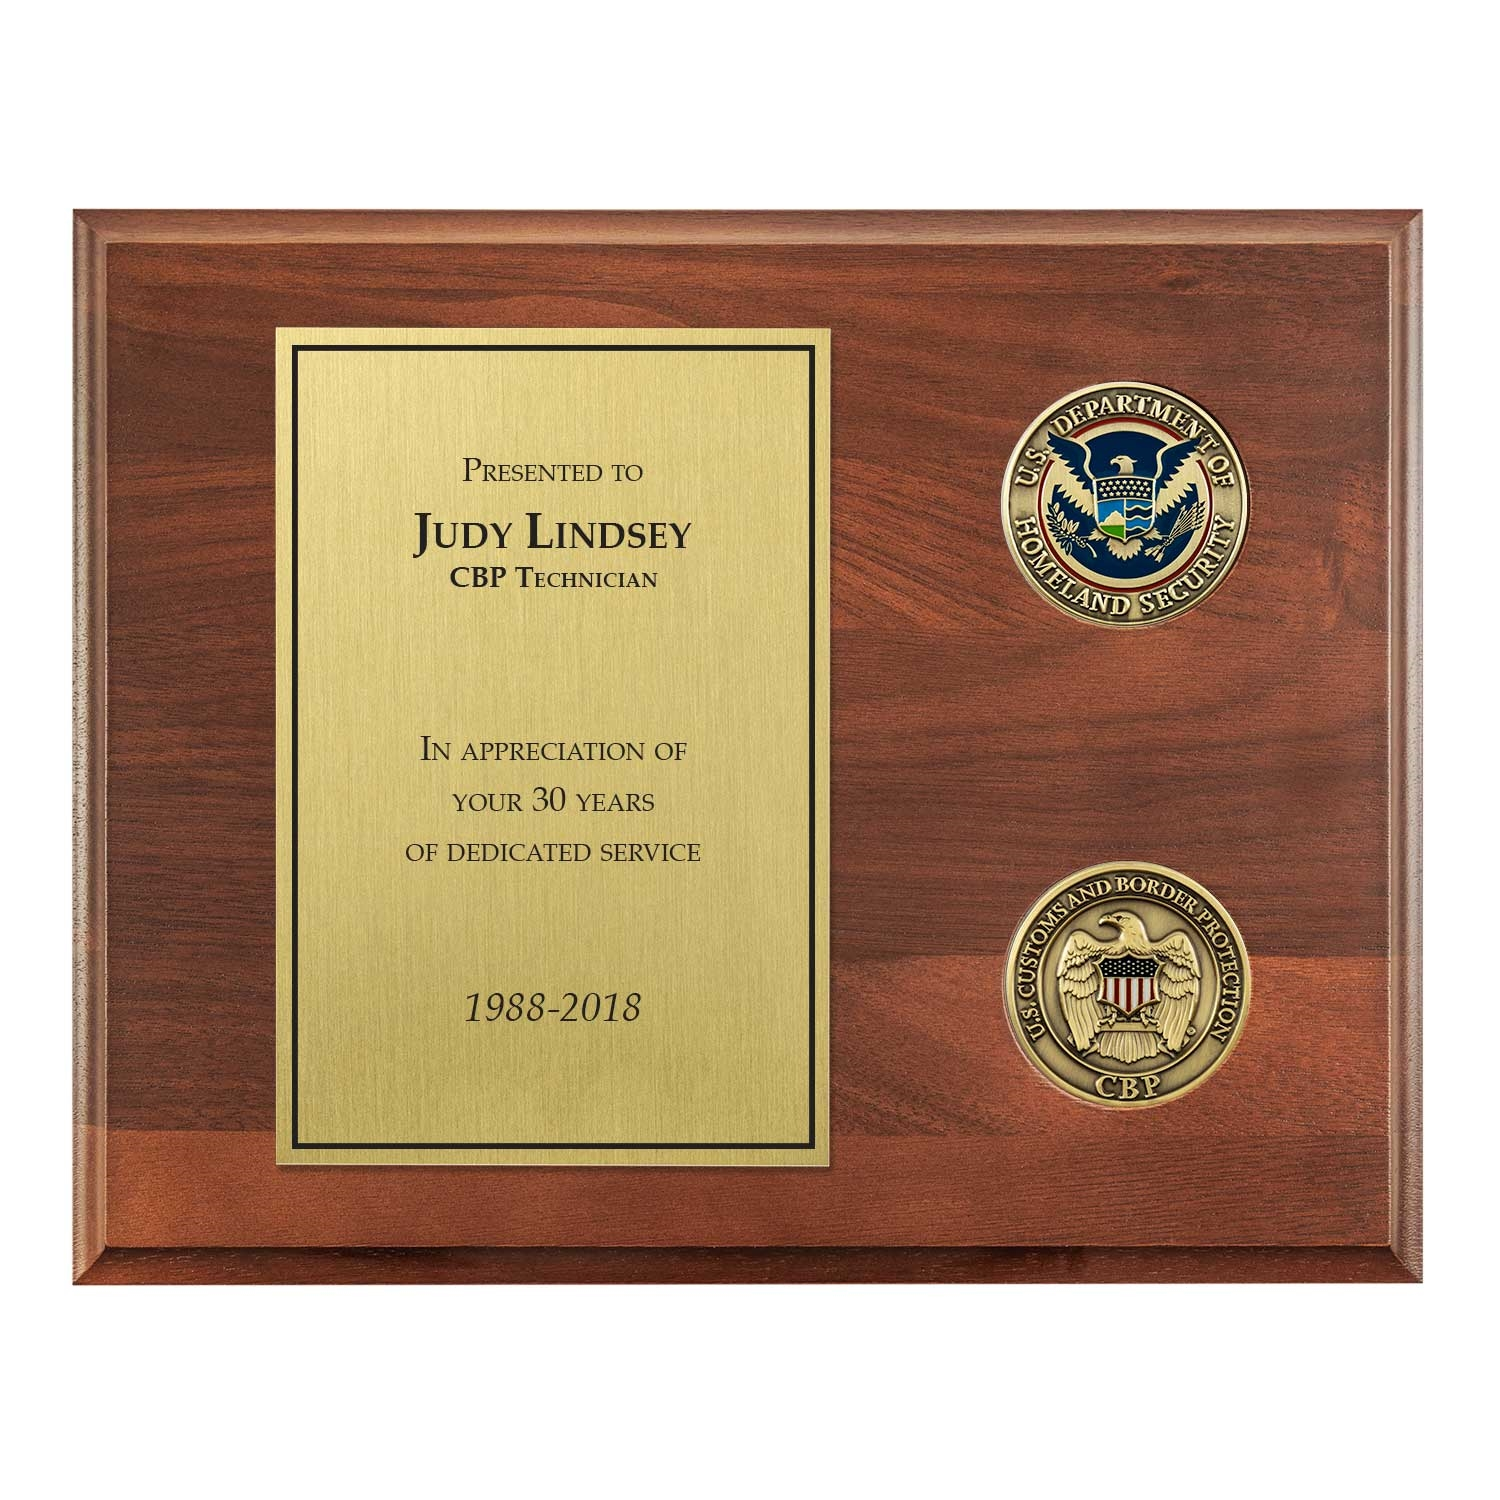 Retirement Plaque Inscription Samples Just B Cause